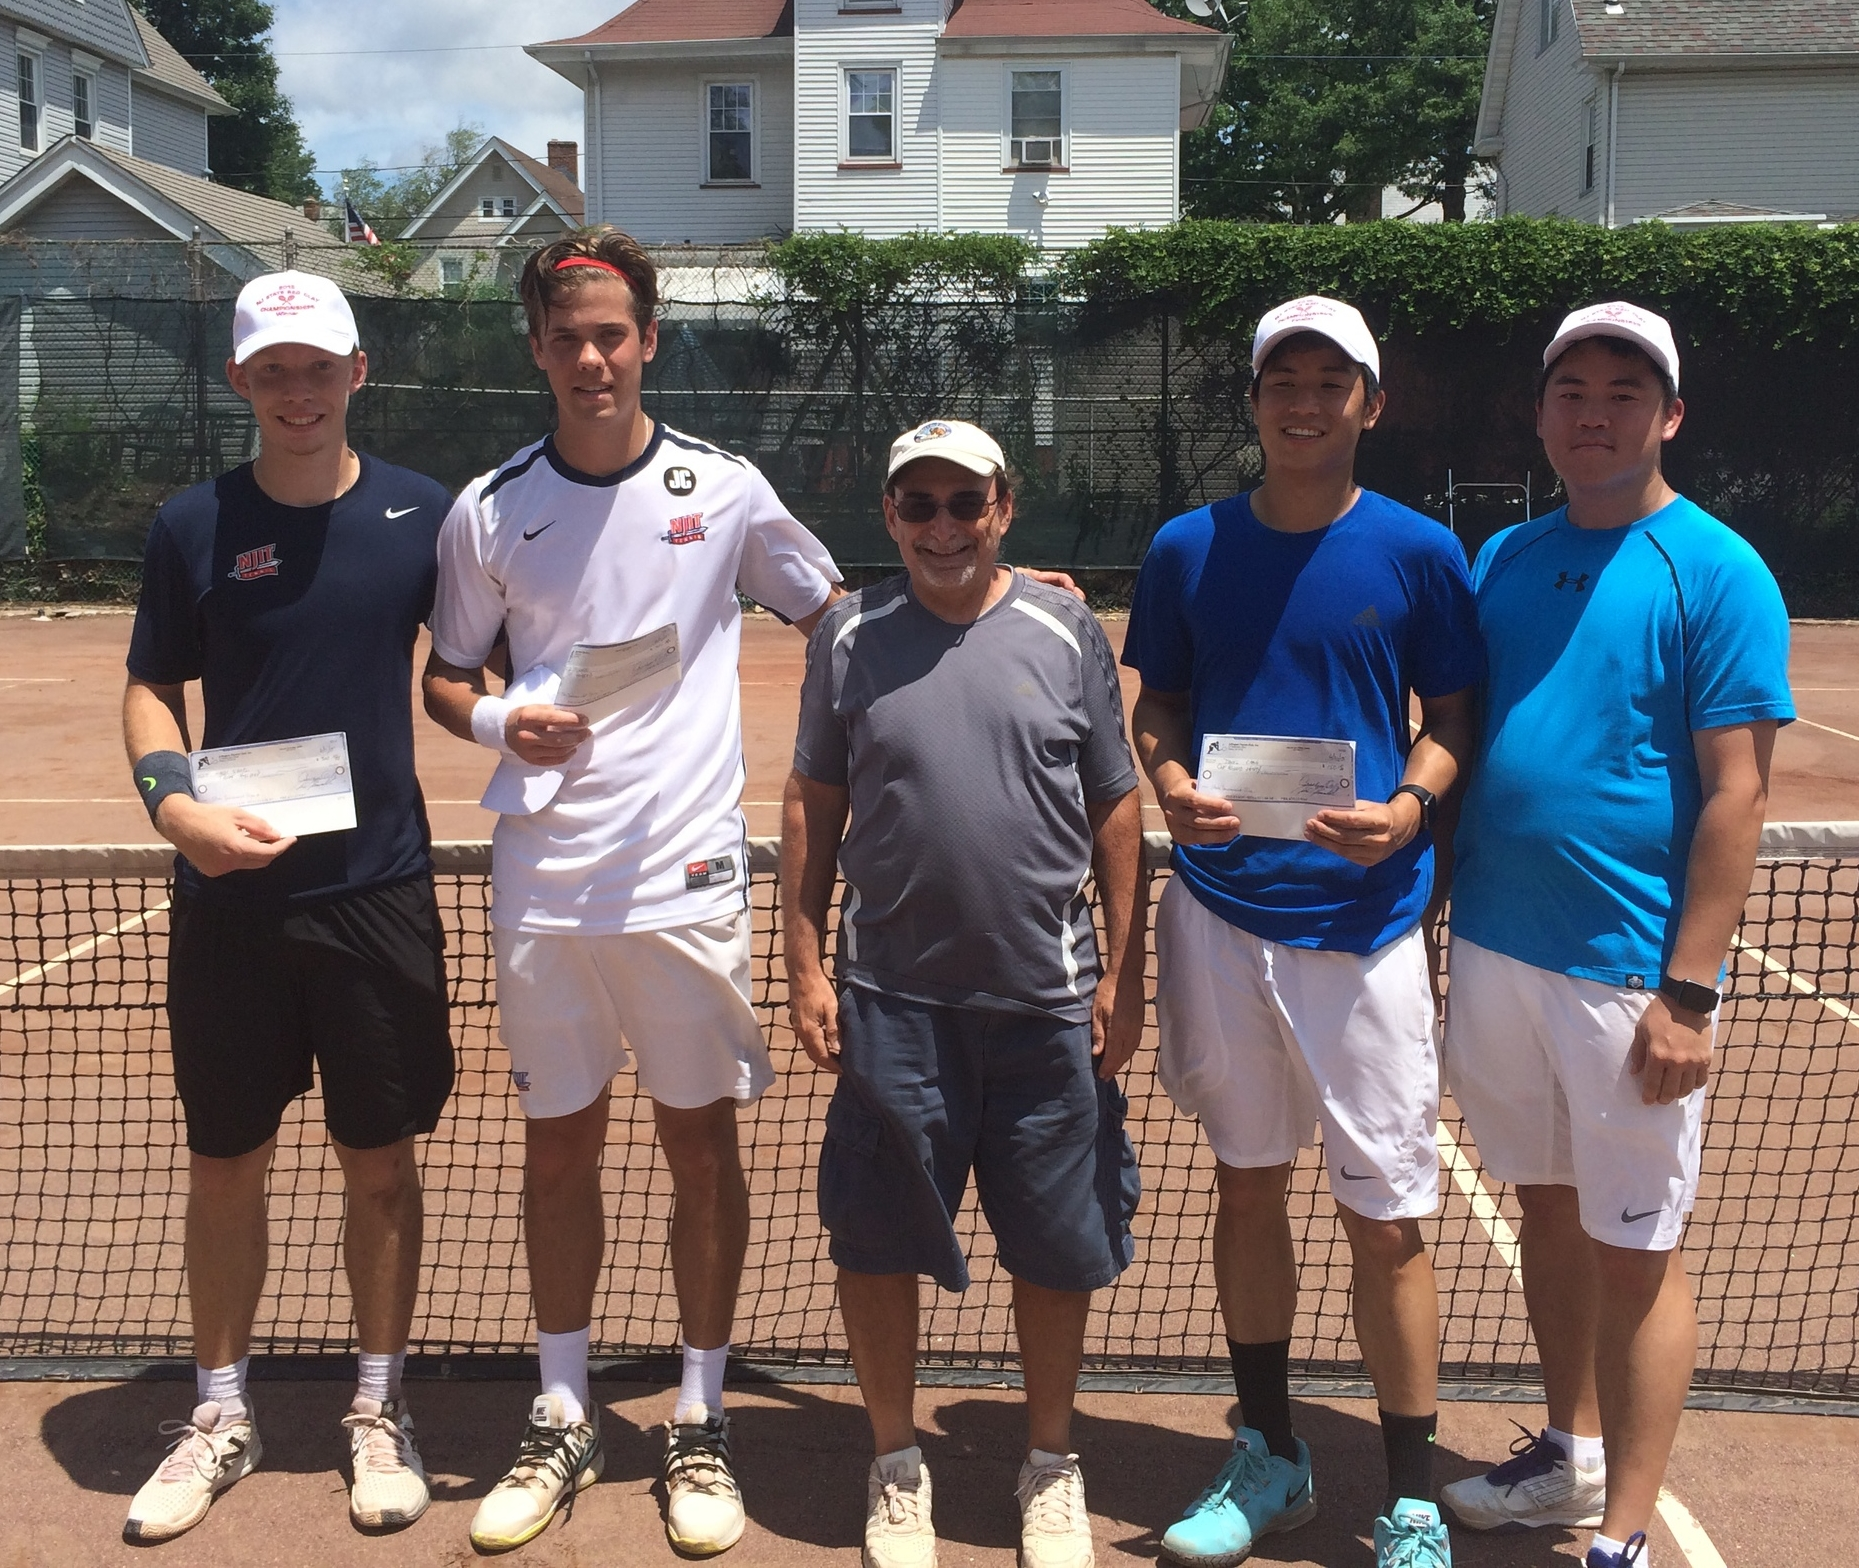 2015 Men's Doubles Winners, Markus Schultz & Carl Jedlinski (left), Tournament Director, Bernie Lebofsky (center) & Runners-ups, Daniel & Timothy Chang (right)